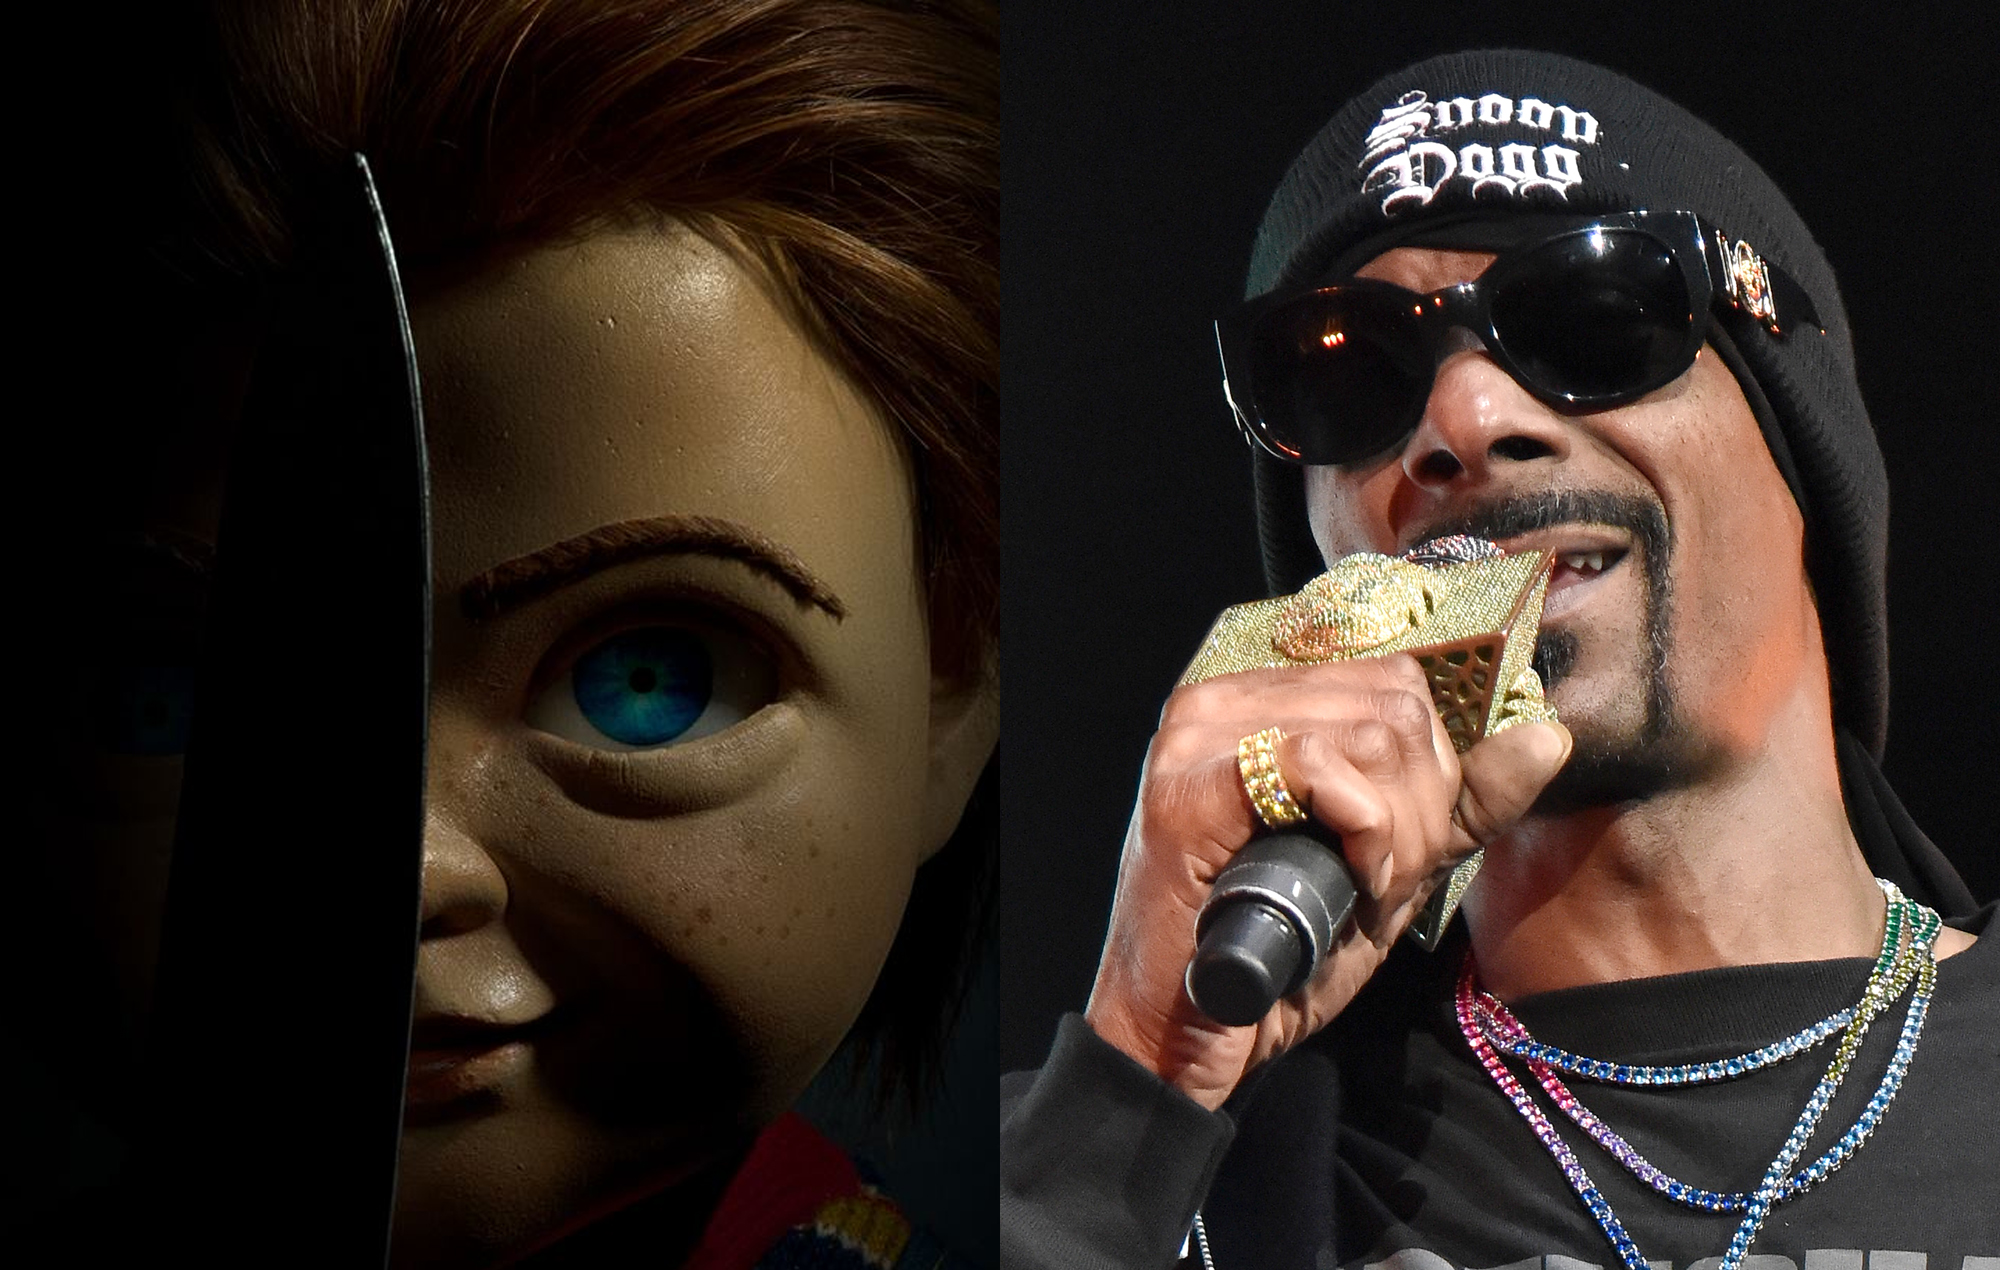 Chucky in 'Child's Play' and Snoop Dogg